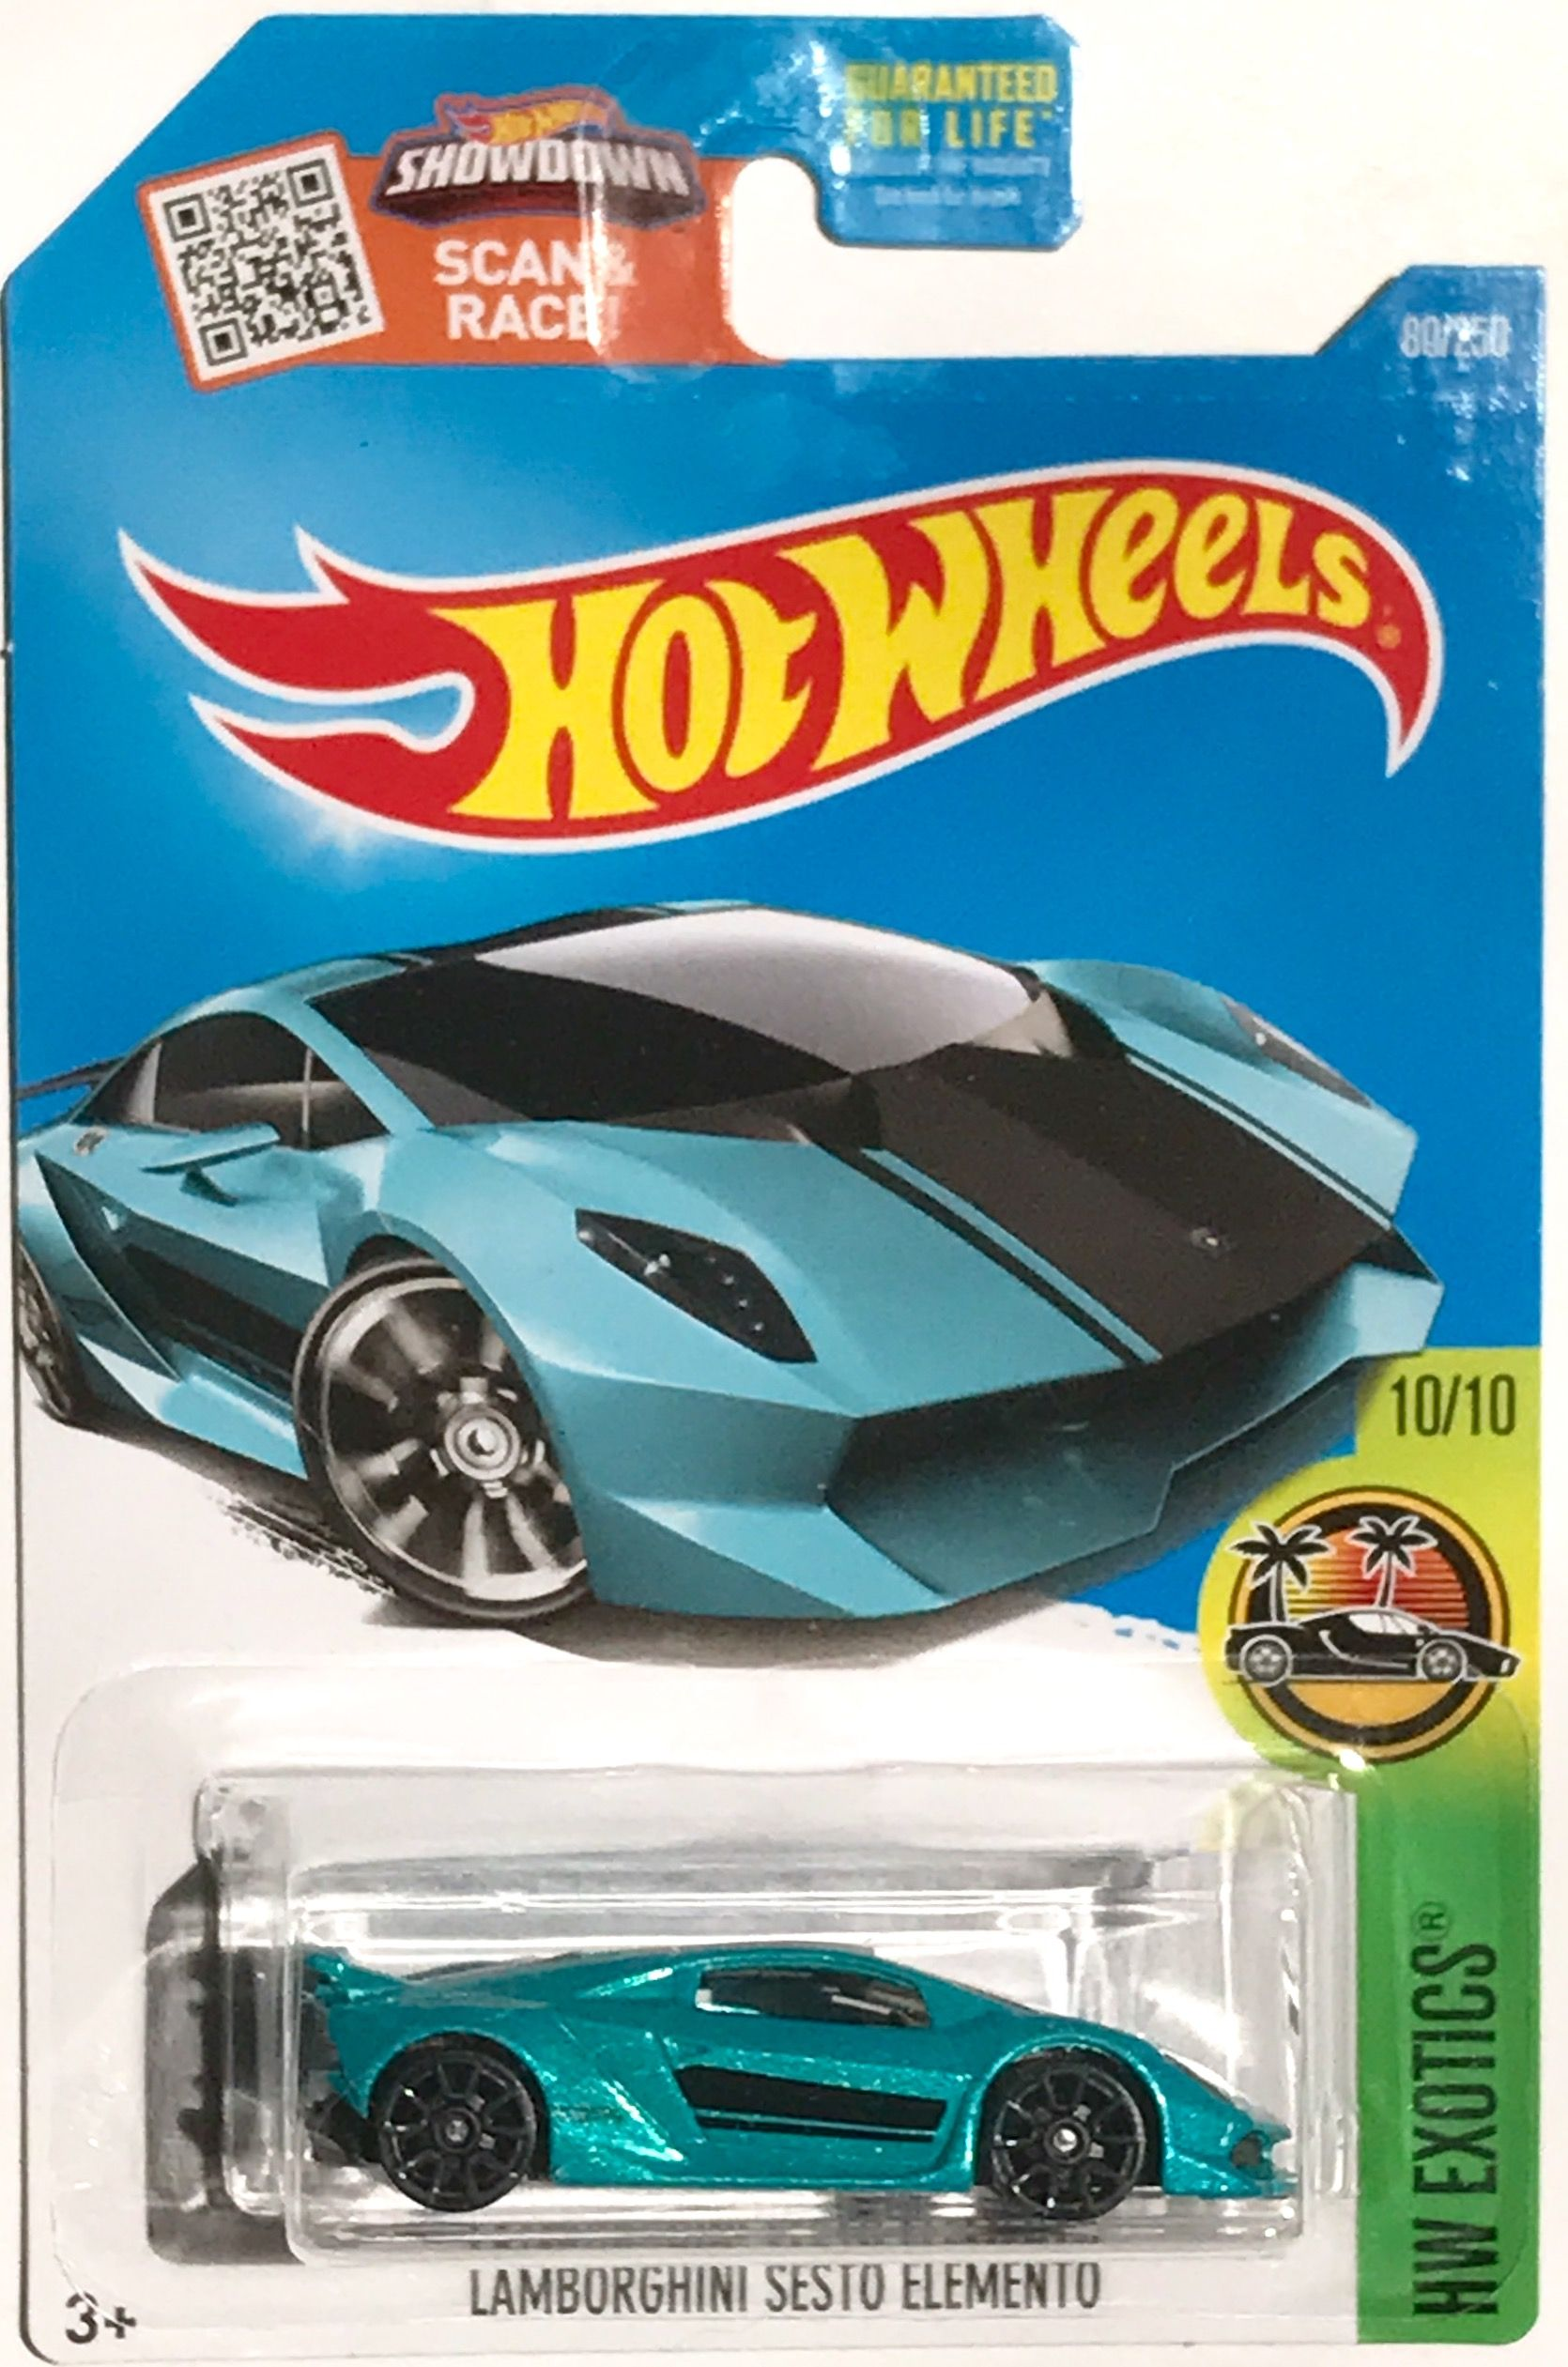 Lamborghini Sesto Elemento With Images Hot Wheels Hot Wheels Cars Cool Sports Cars